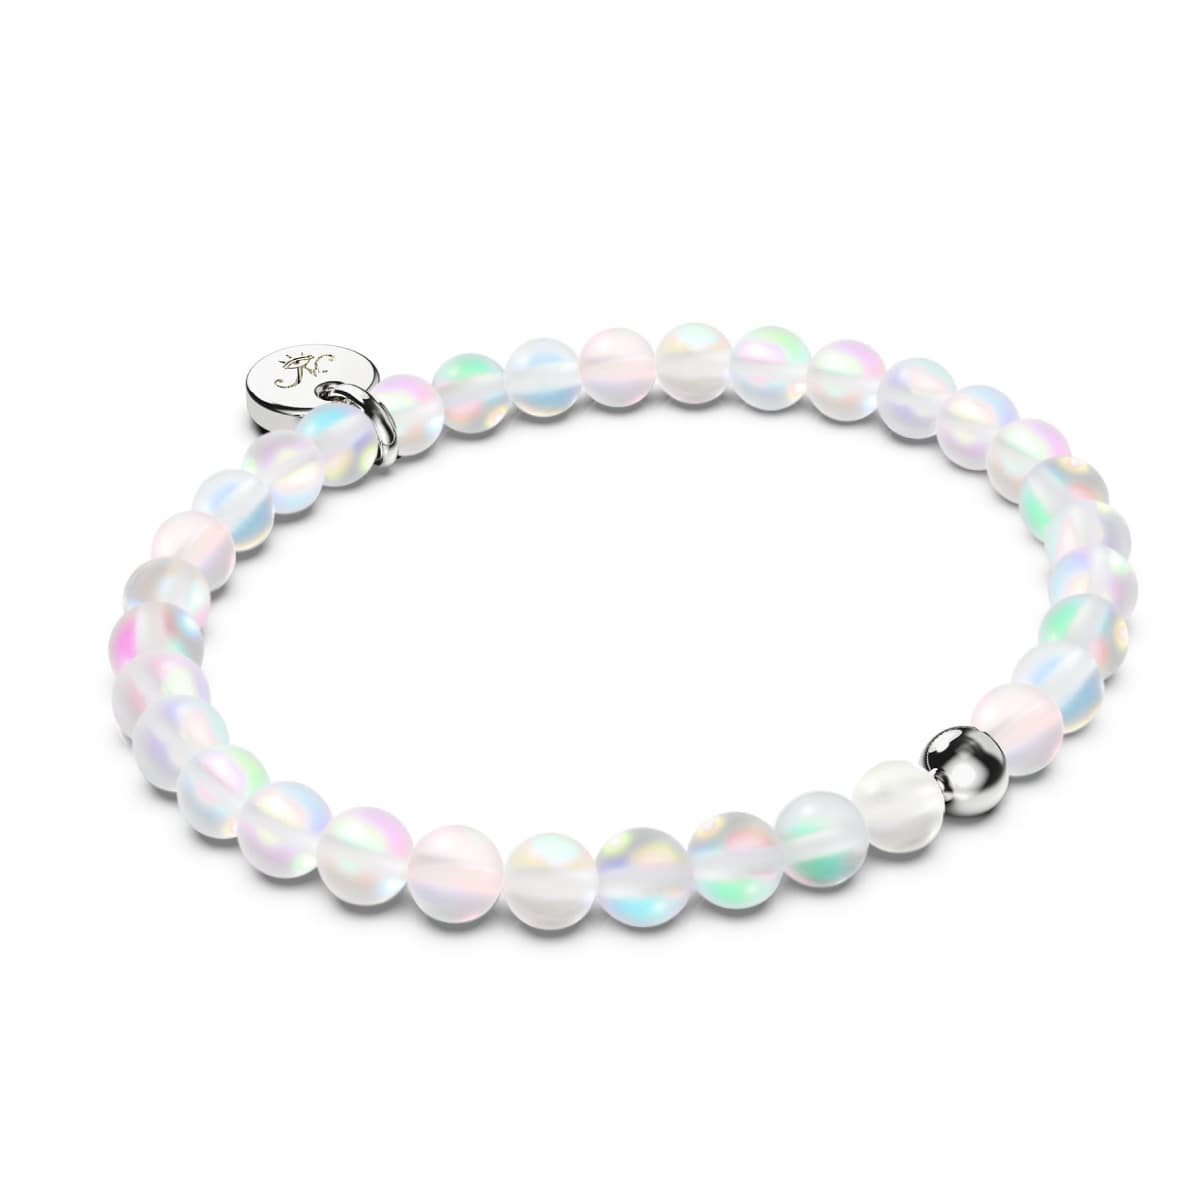 Rainbow White | .925 Sterling Silver | Mermaid Glass Bead Bracelet